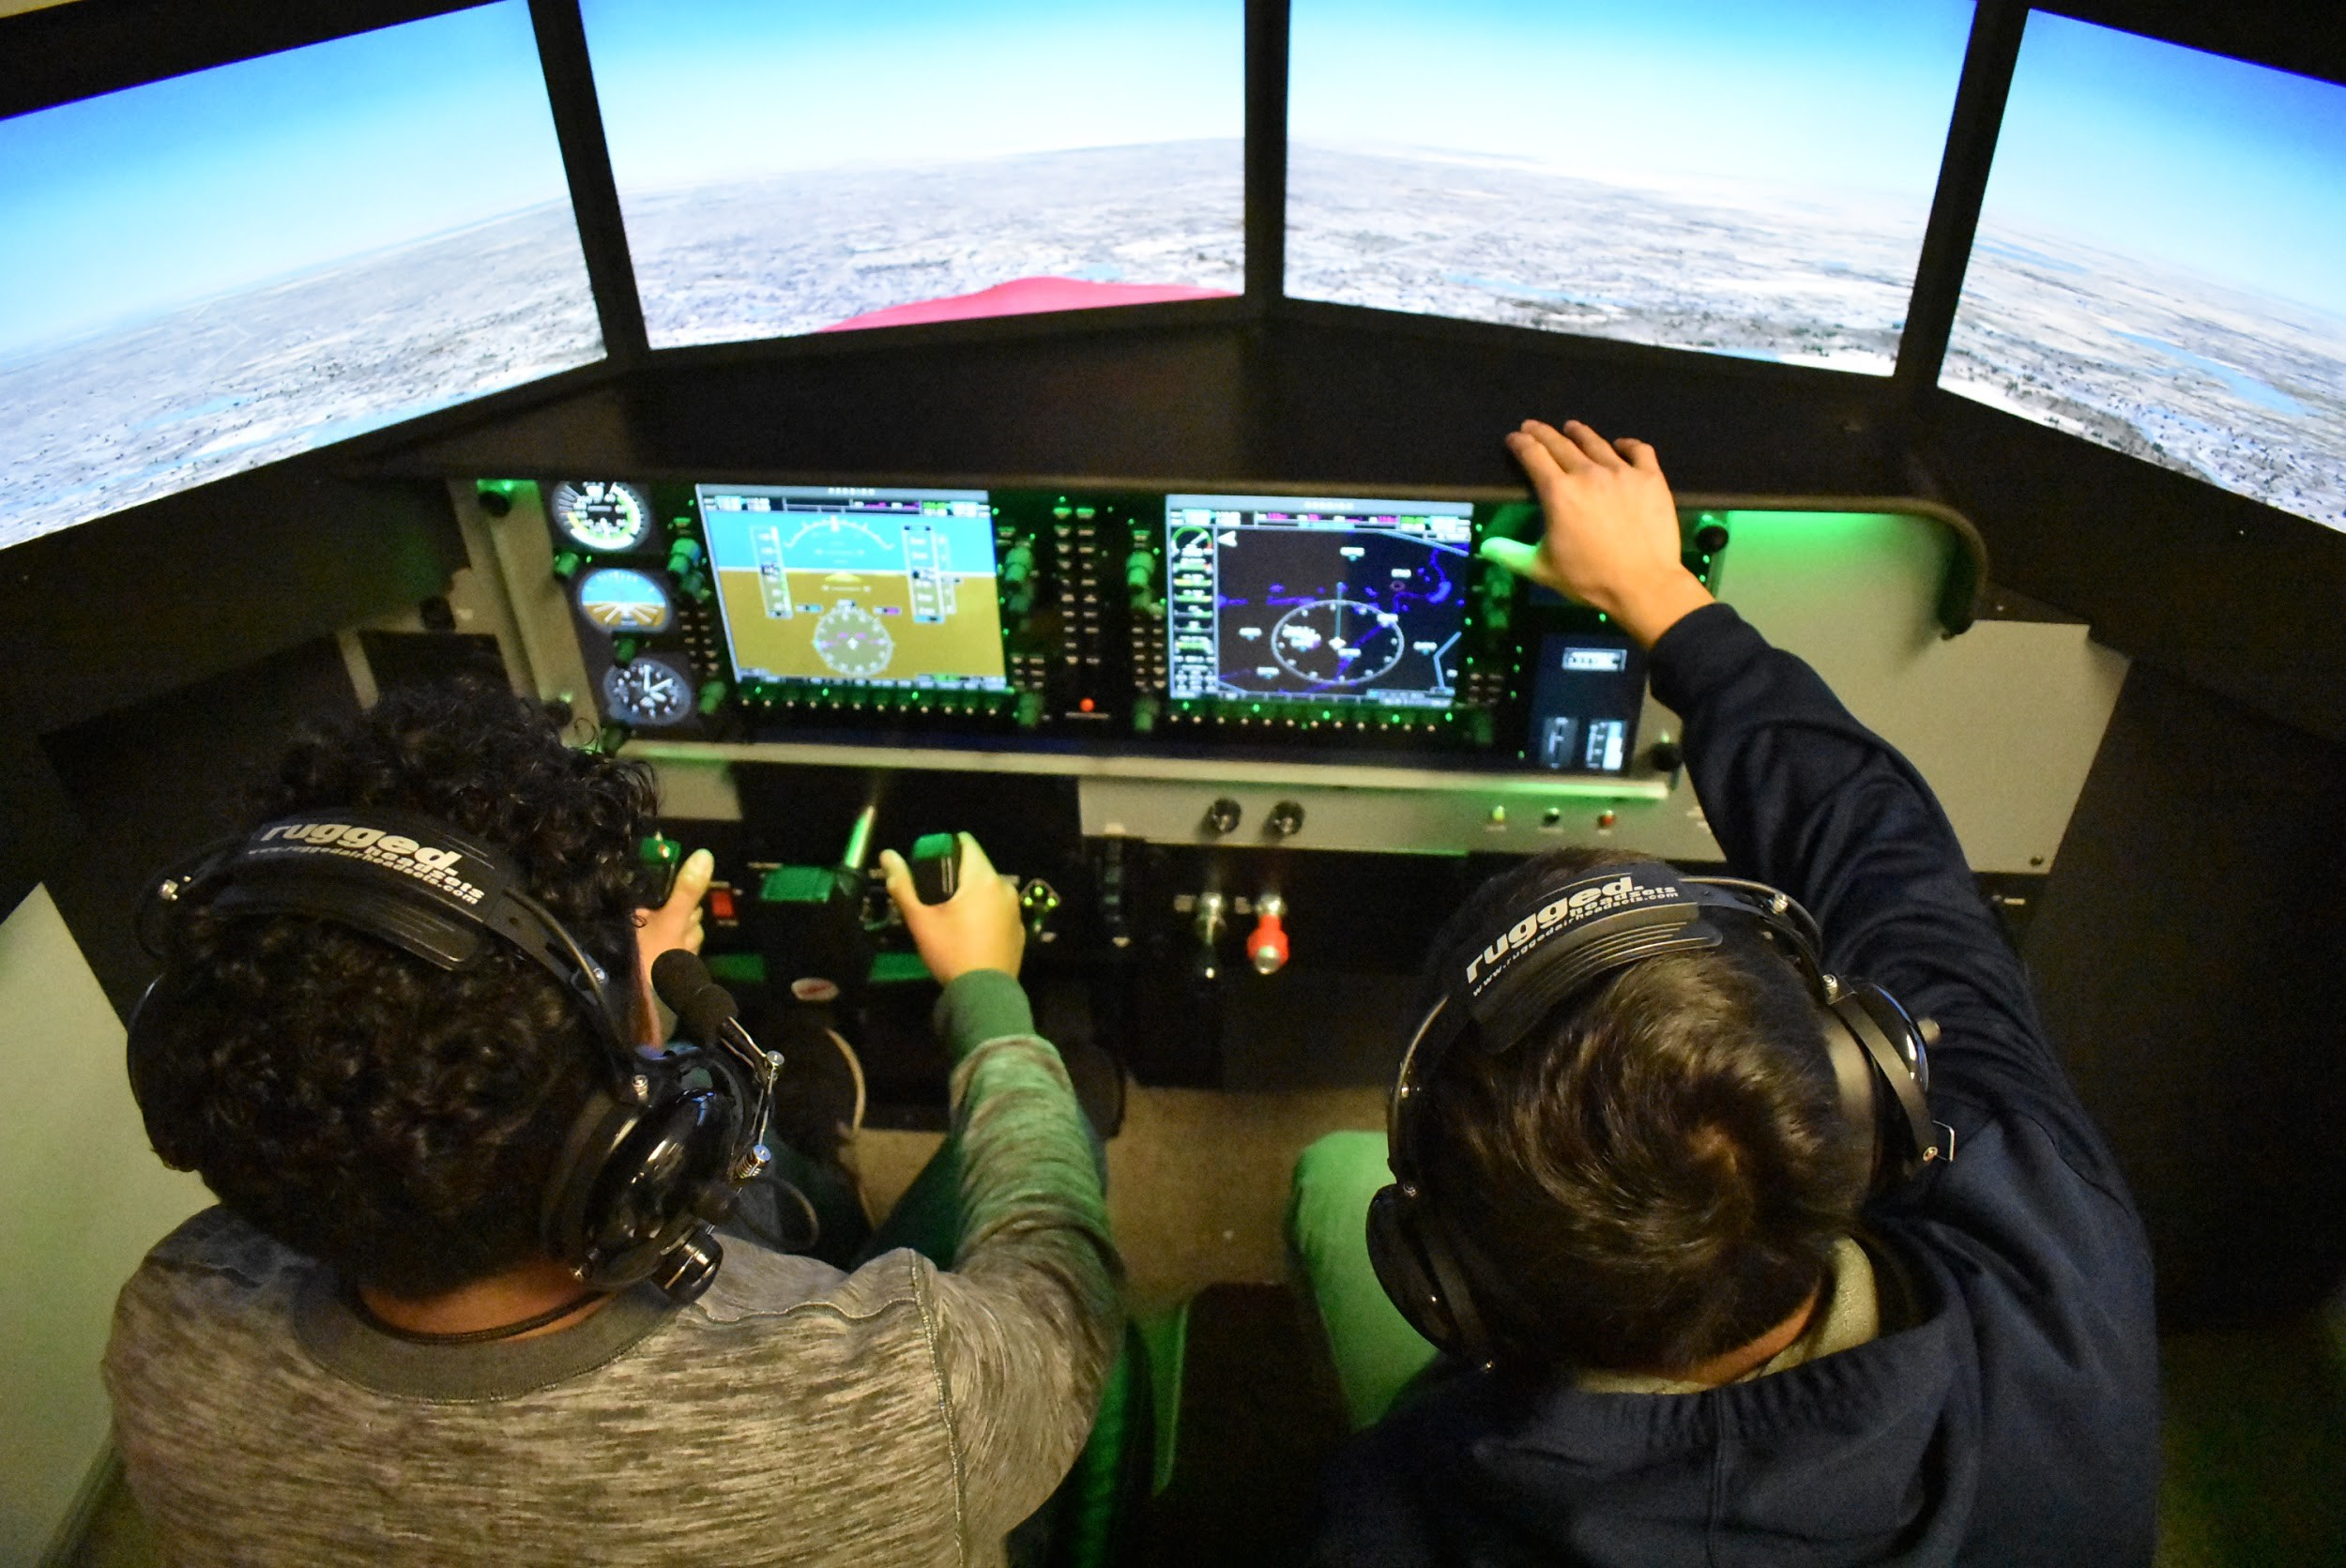 Career & Technical Education Program Focuses on Aviation